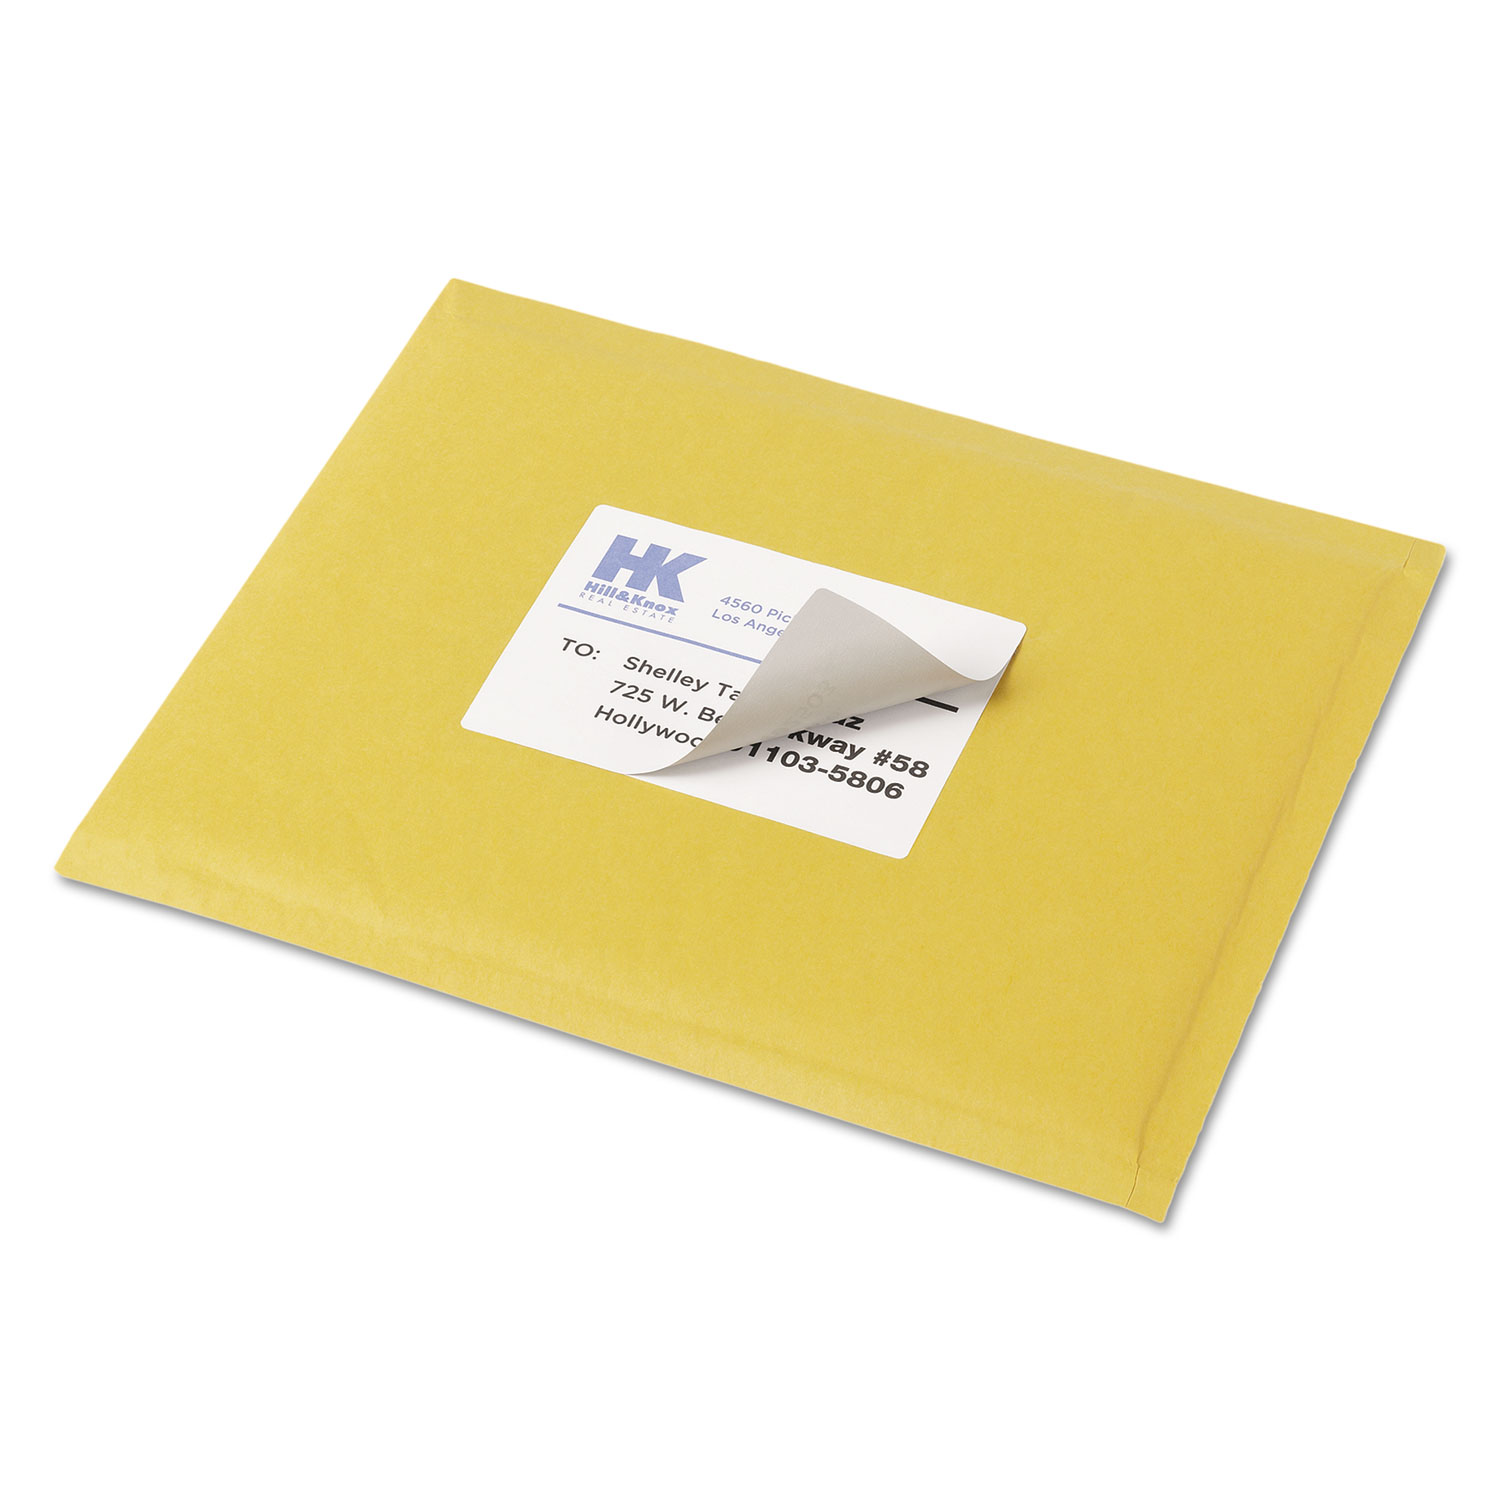 Shipping labels with trueblock technology by avery for Avery 5168 label template